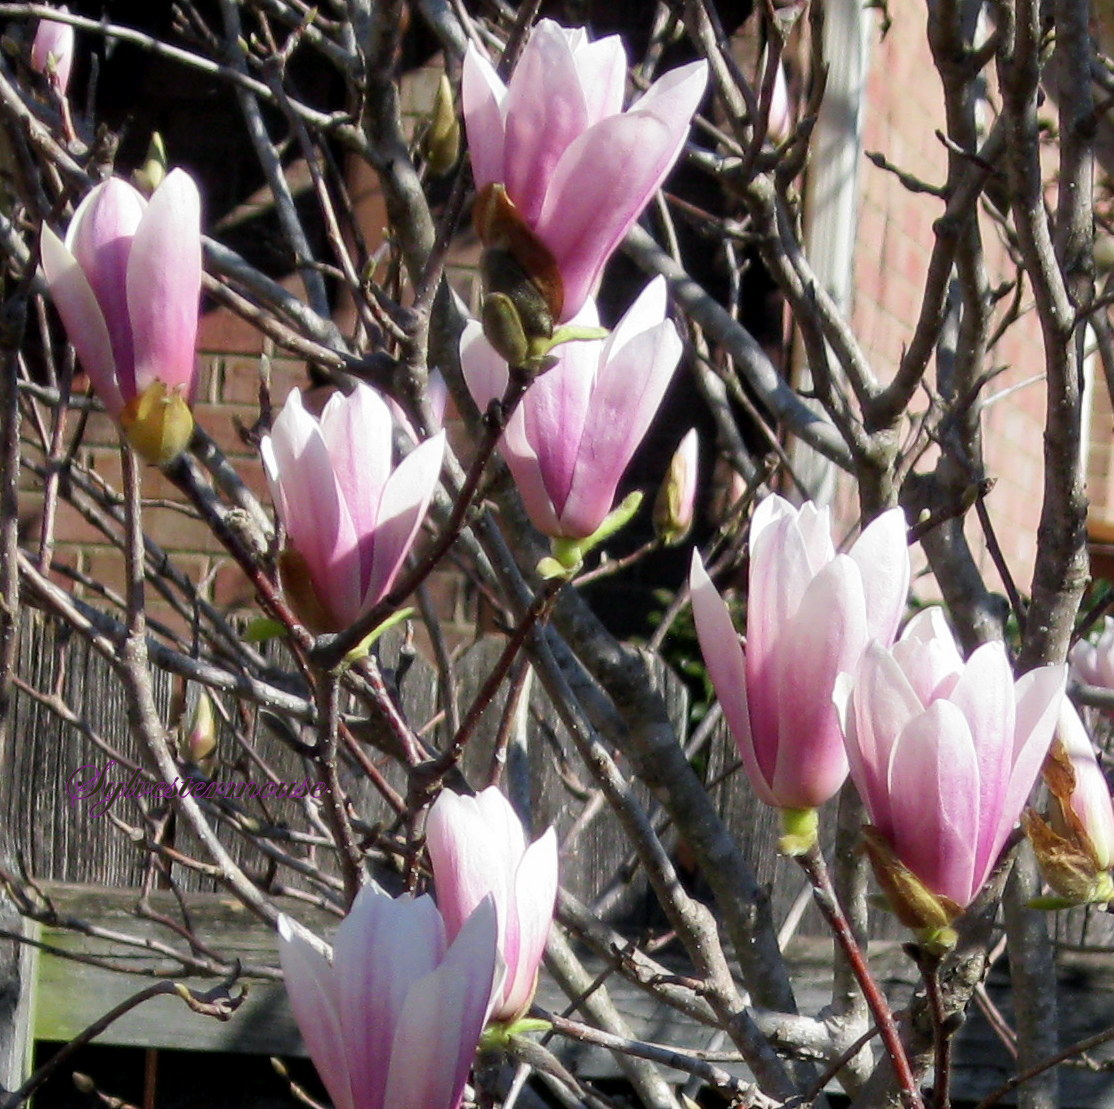 Jane Magnolia tree pink blooms